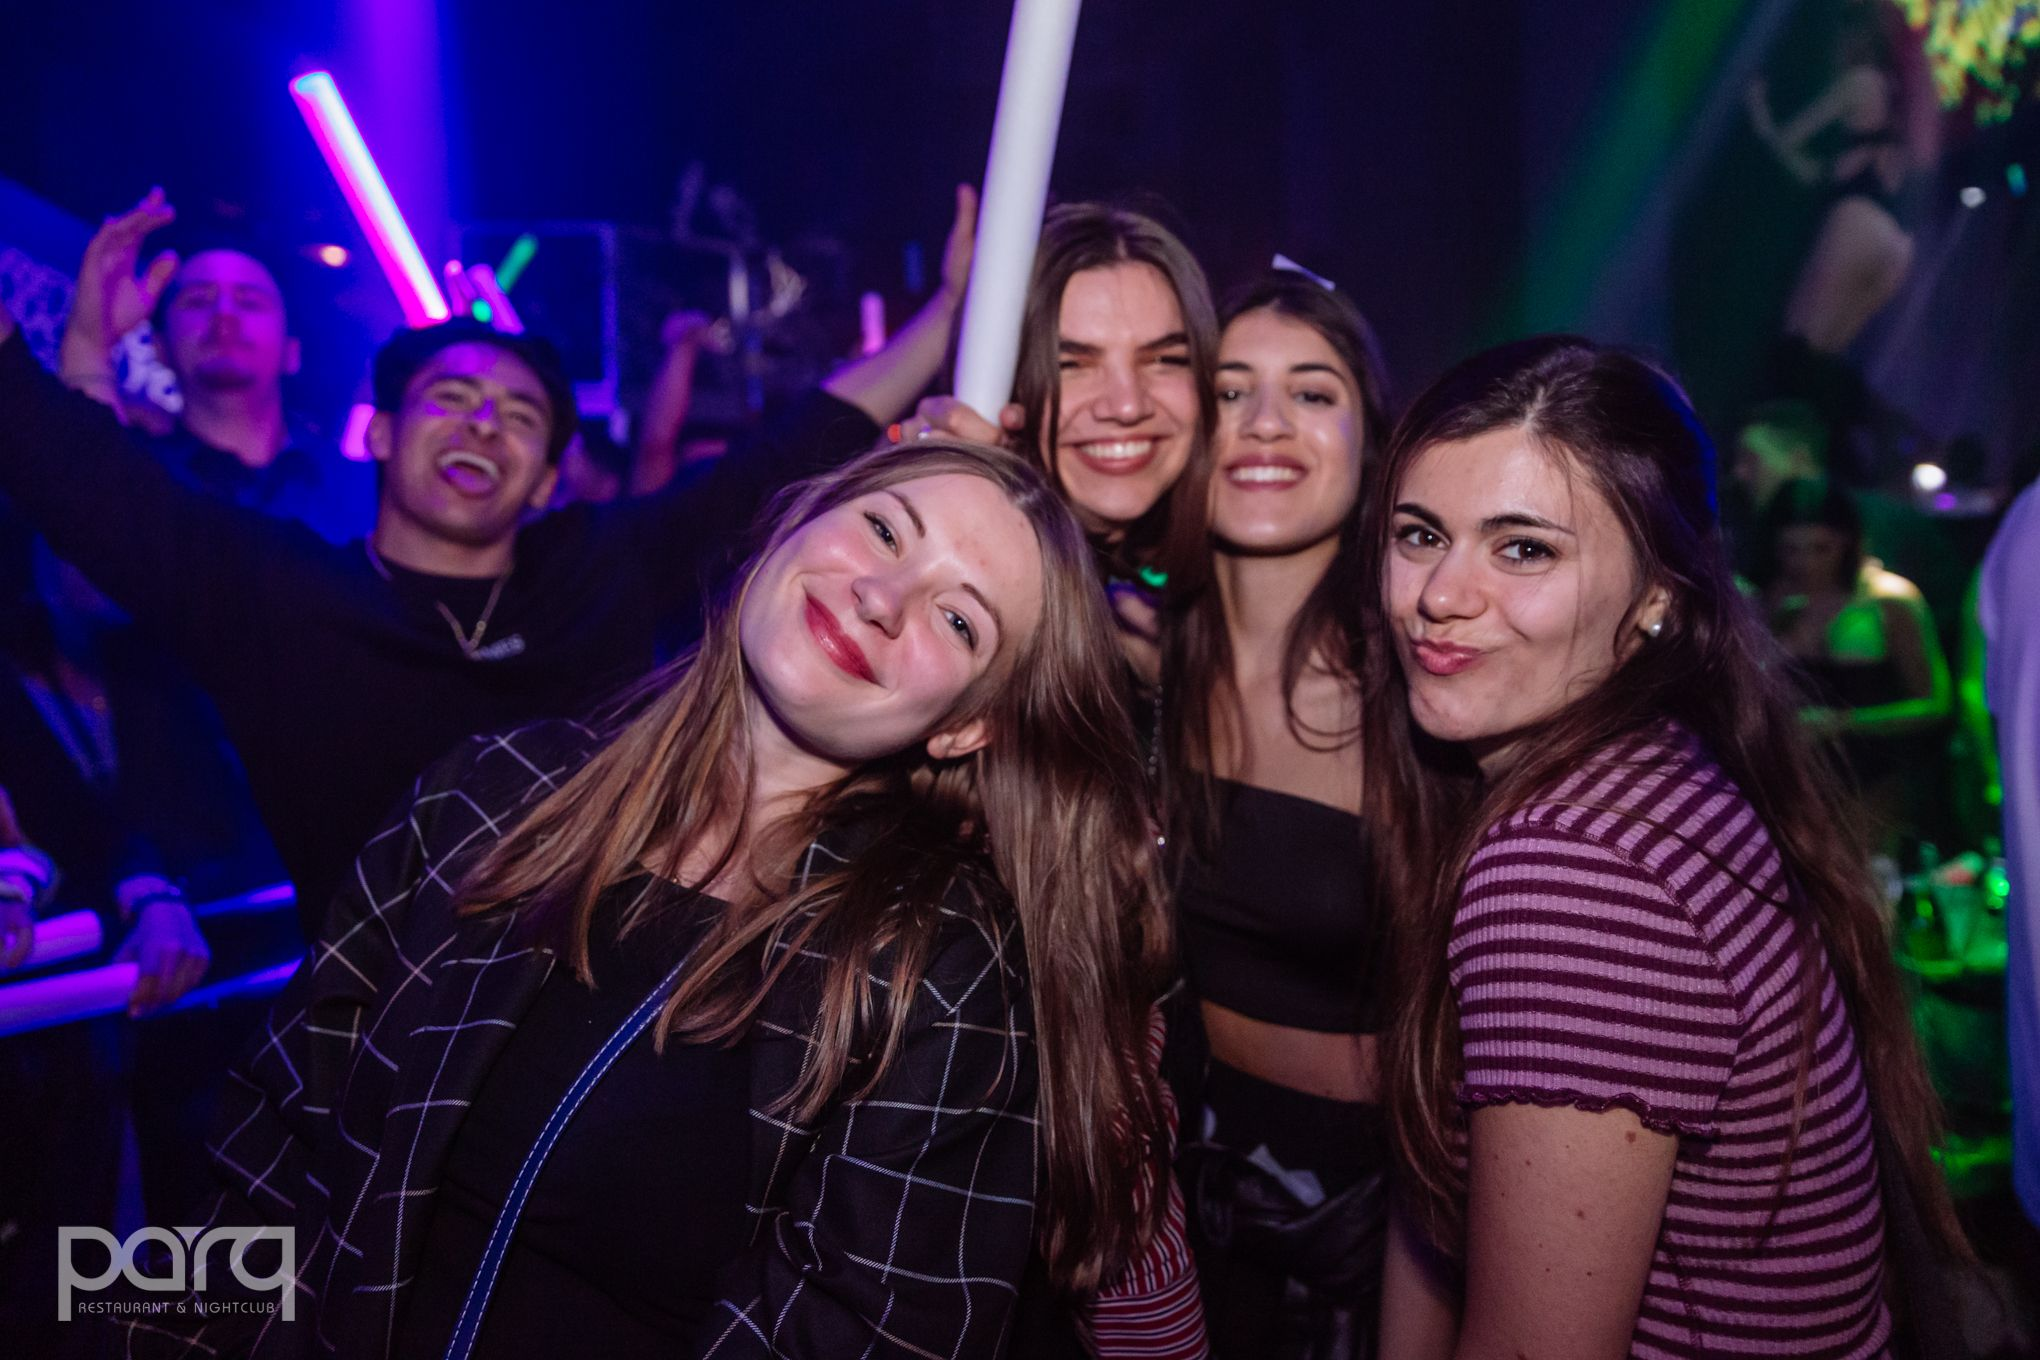 02.23.19 Parq - Lost Frequencies-31.jpg